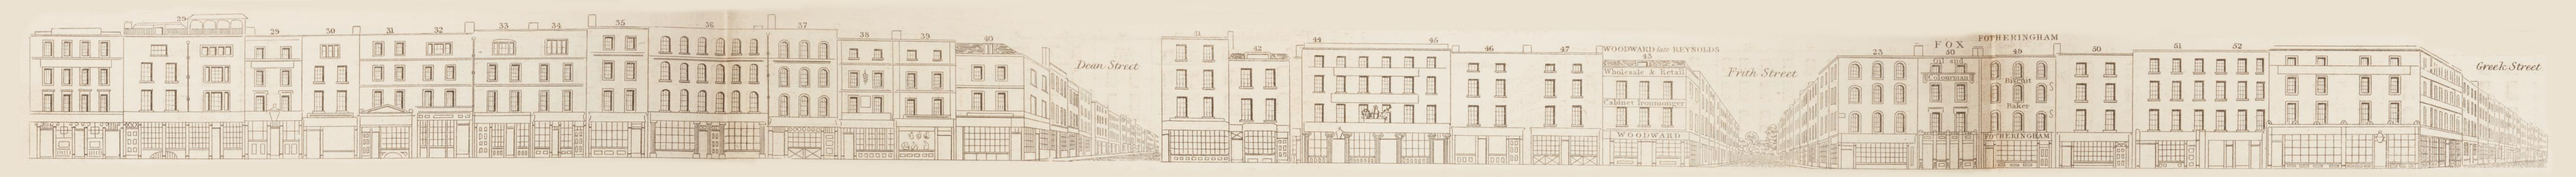 map - Tallis's London street views : No. 70. Old Compton Street (north)